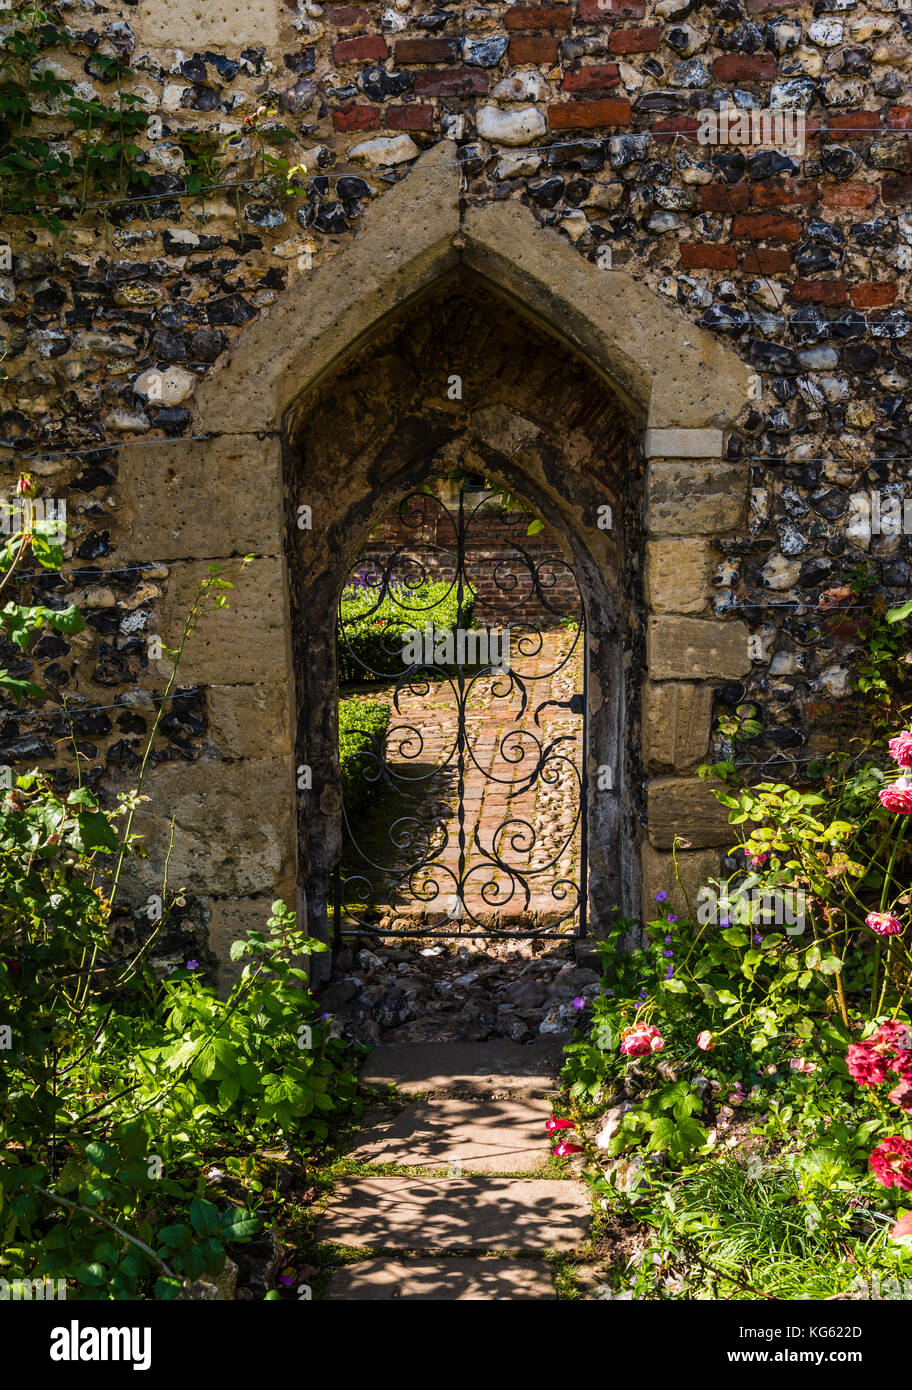 Gate in the walled gardens, Greys Court, Oxfordshire, UK - Stock Image